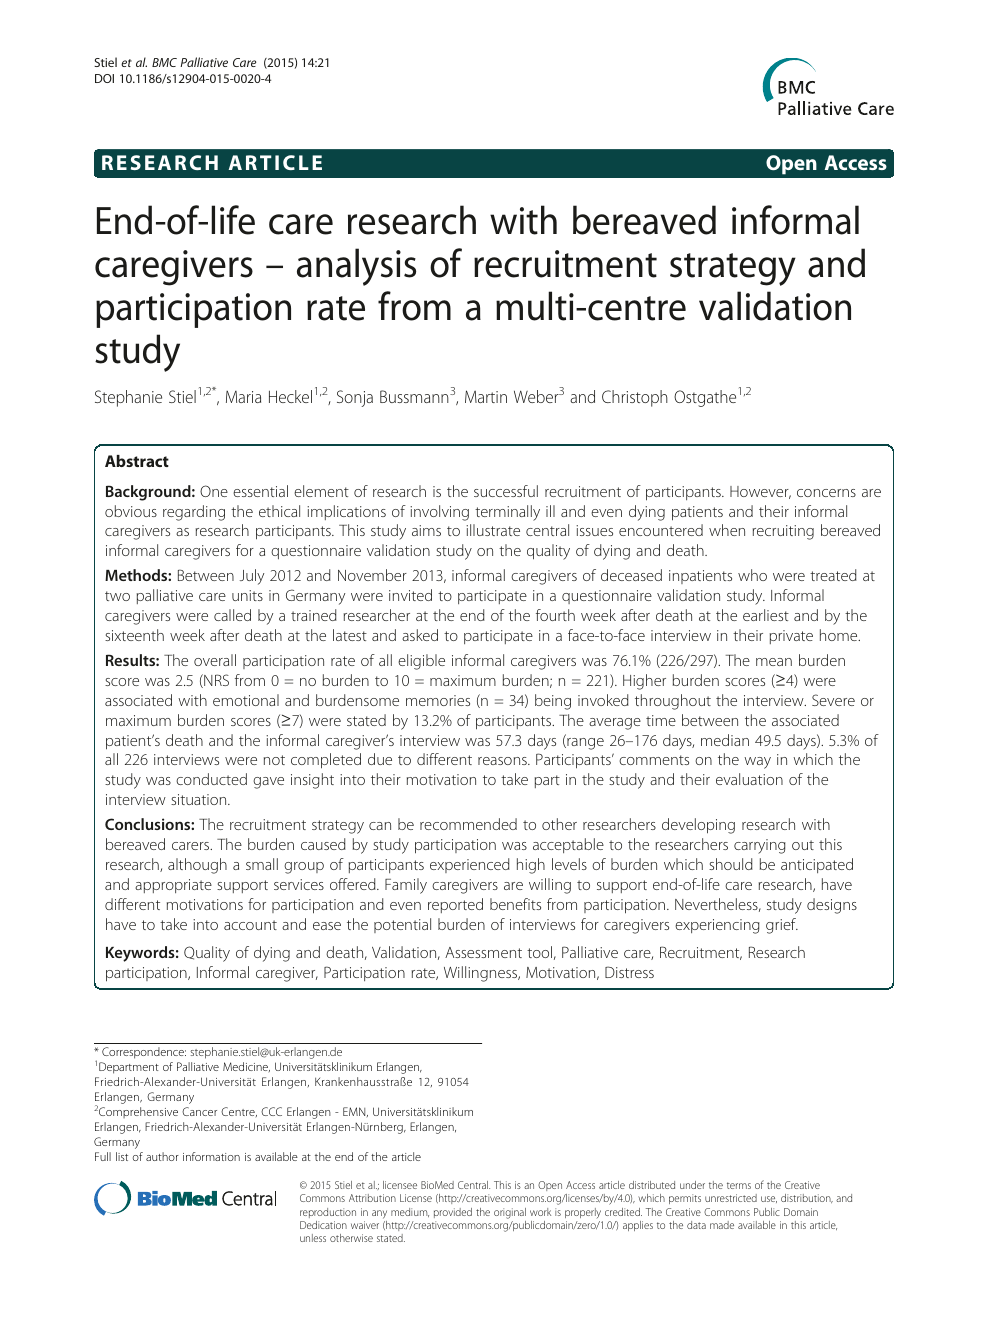 End of life care research paper help with my composition cv